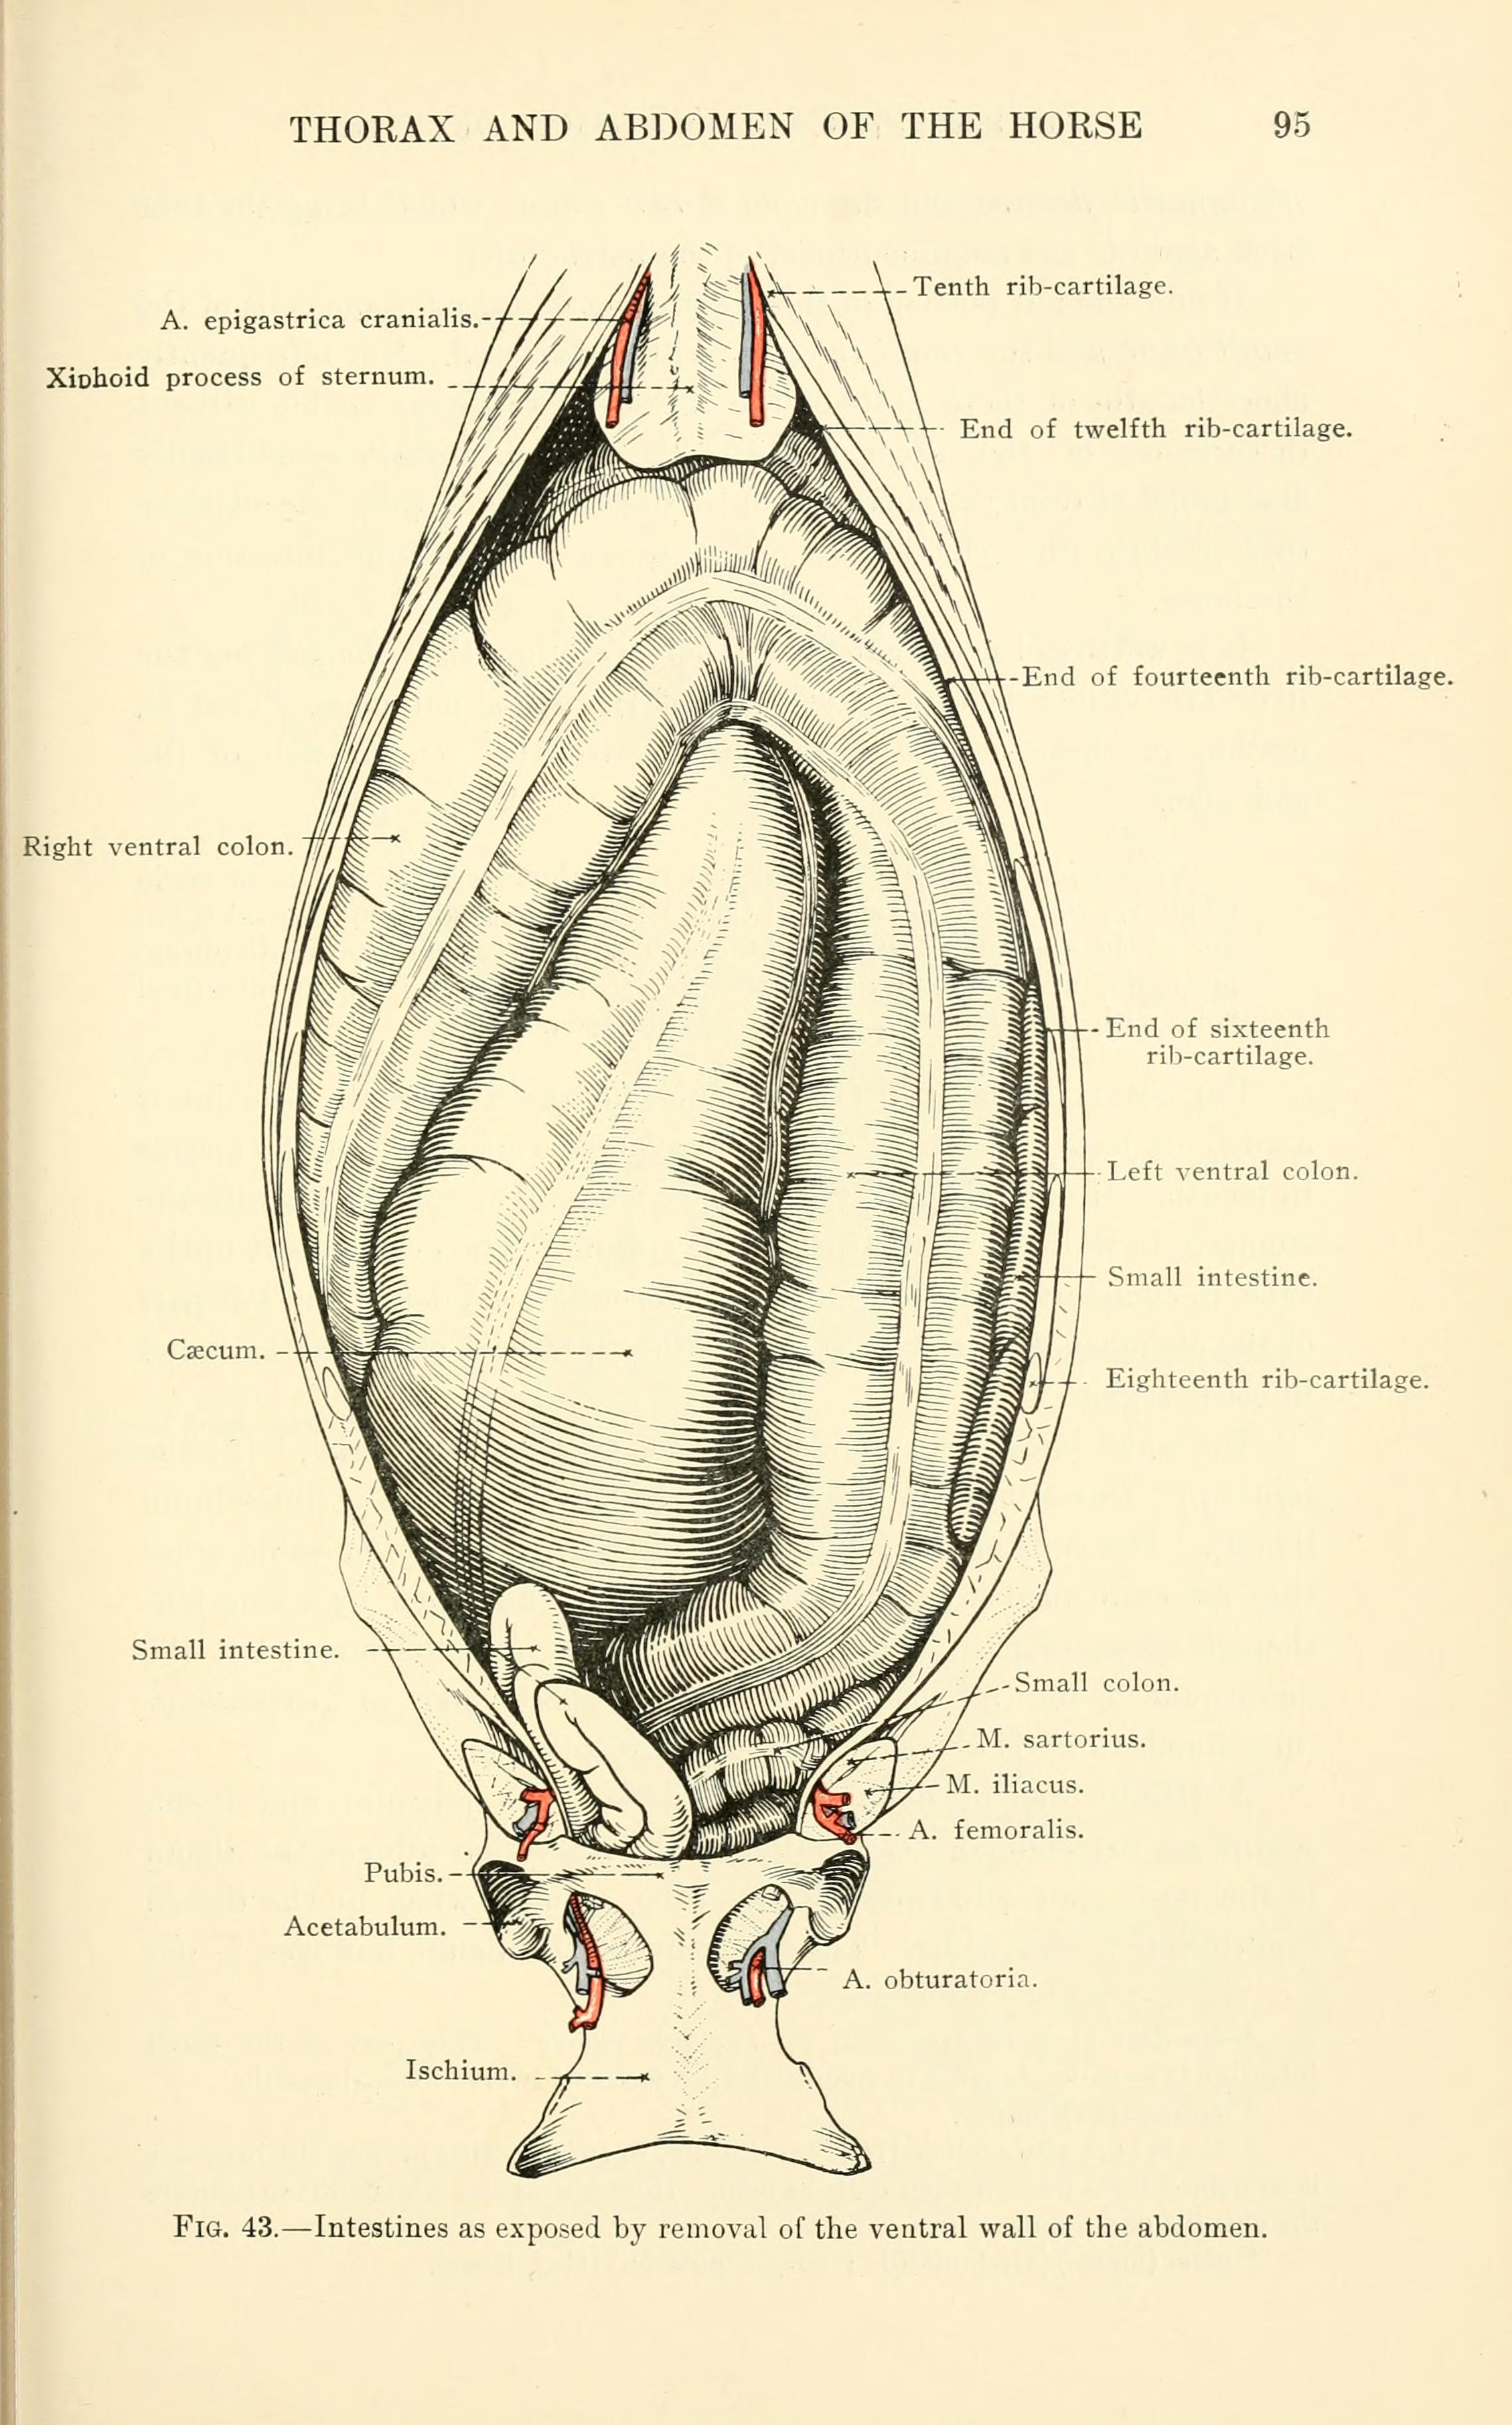 Filethe Topographical Anatomy Of The Thorax And Abdomen Of The